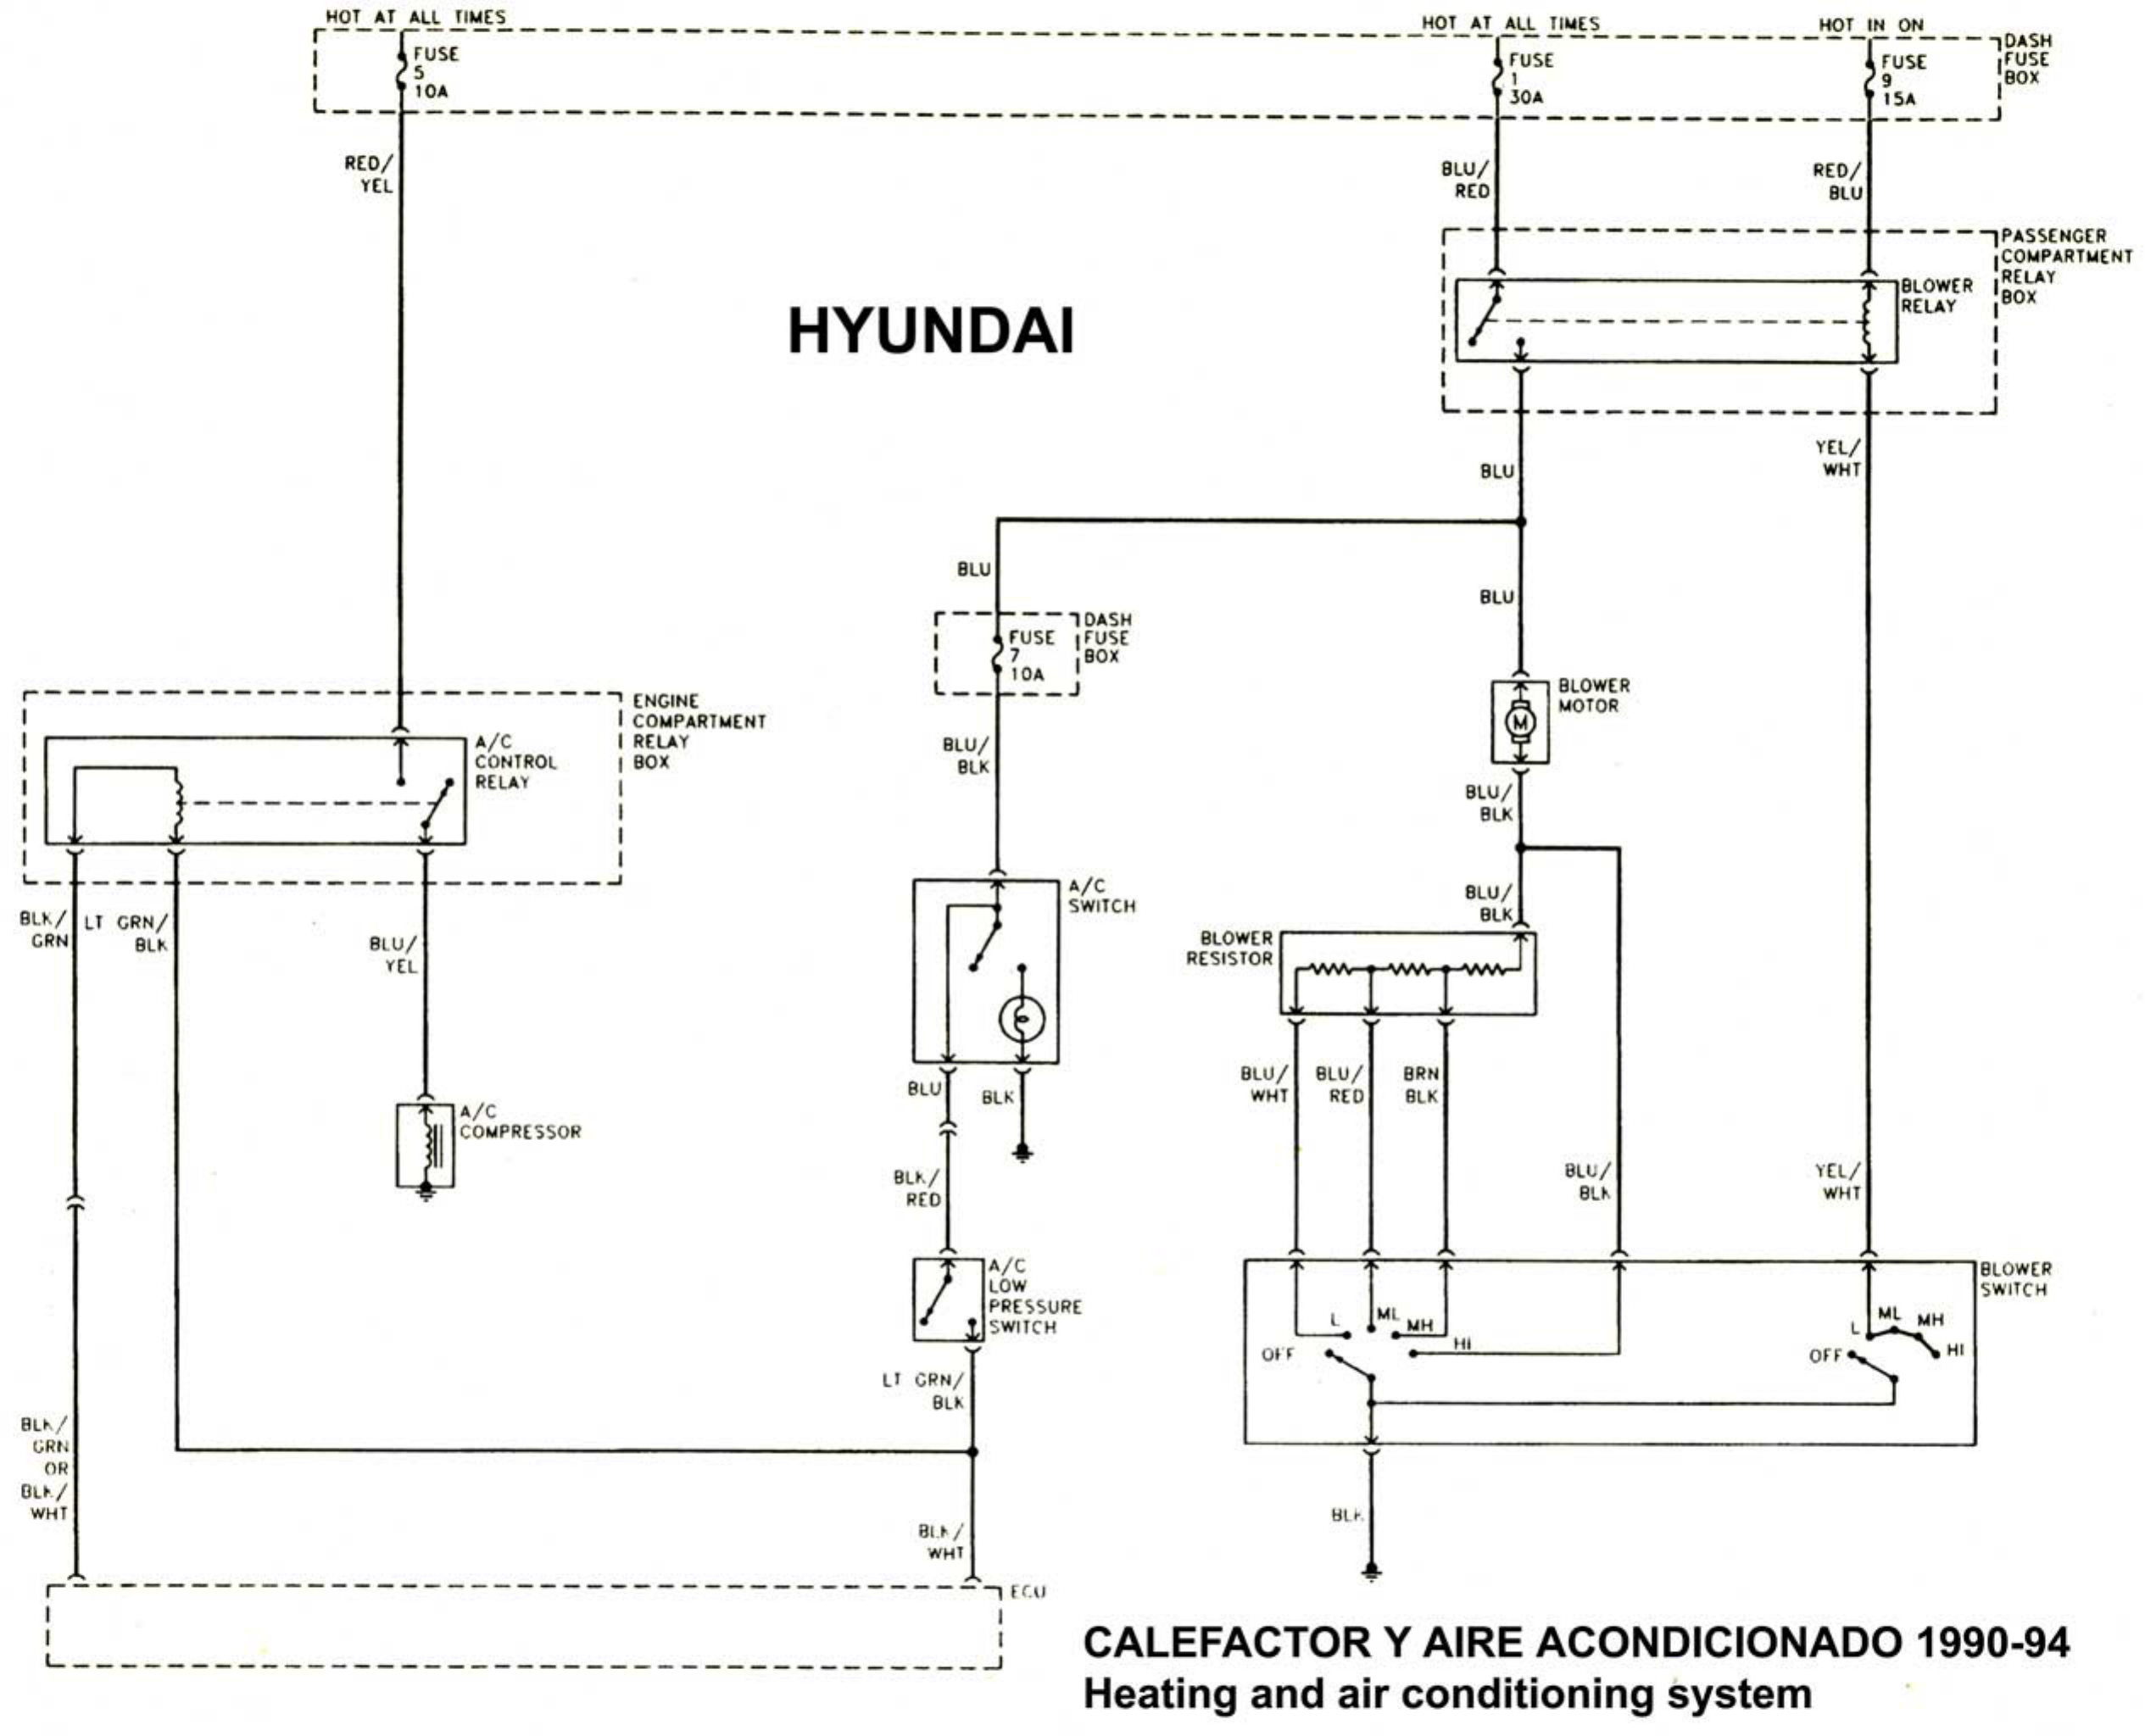 1992 Hyundai Wiring Diagram Online Schematics Marklift Diagrams Excel Misc Document Spanish Pdf Fadal